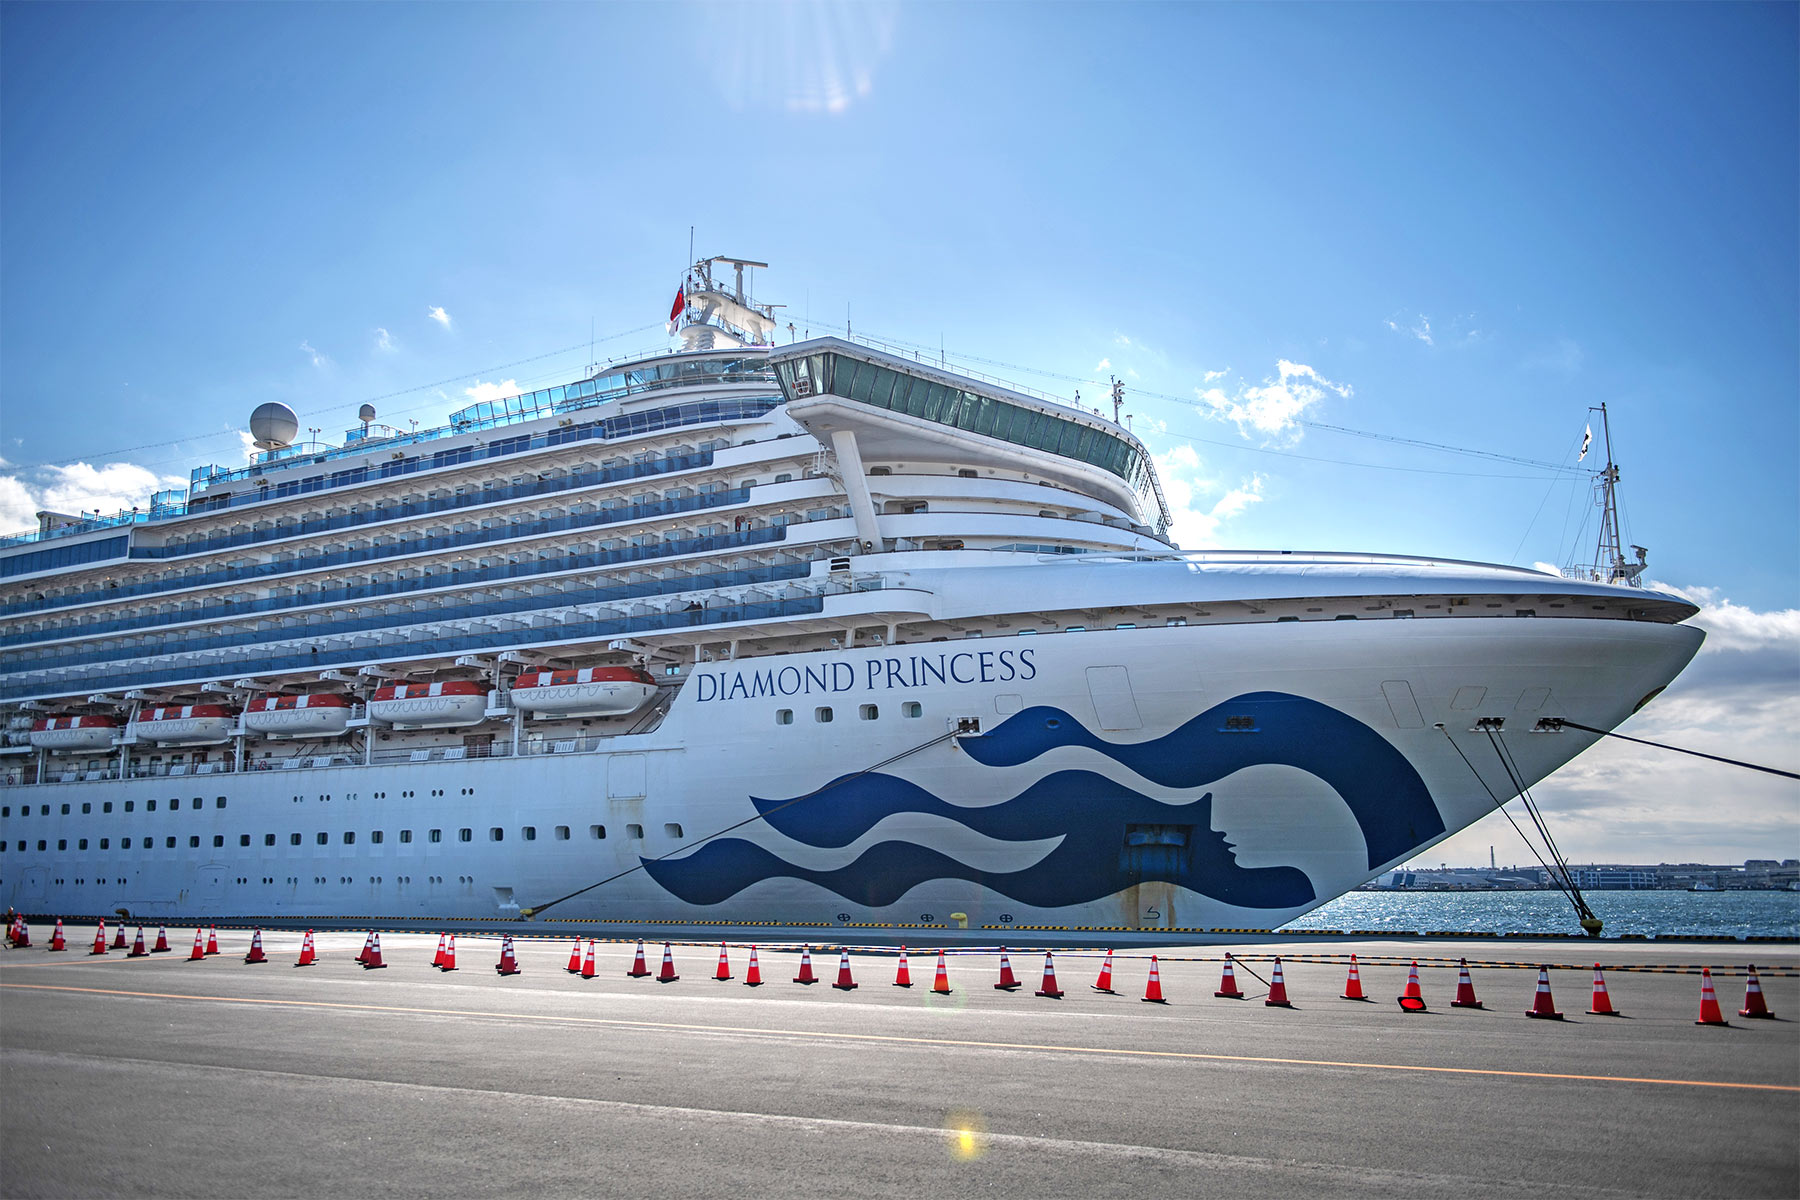 Cruise Lines Banning Passengers, Issuing Health Screenings, but Continue to Sail Amid Coronavirus